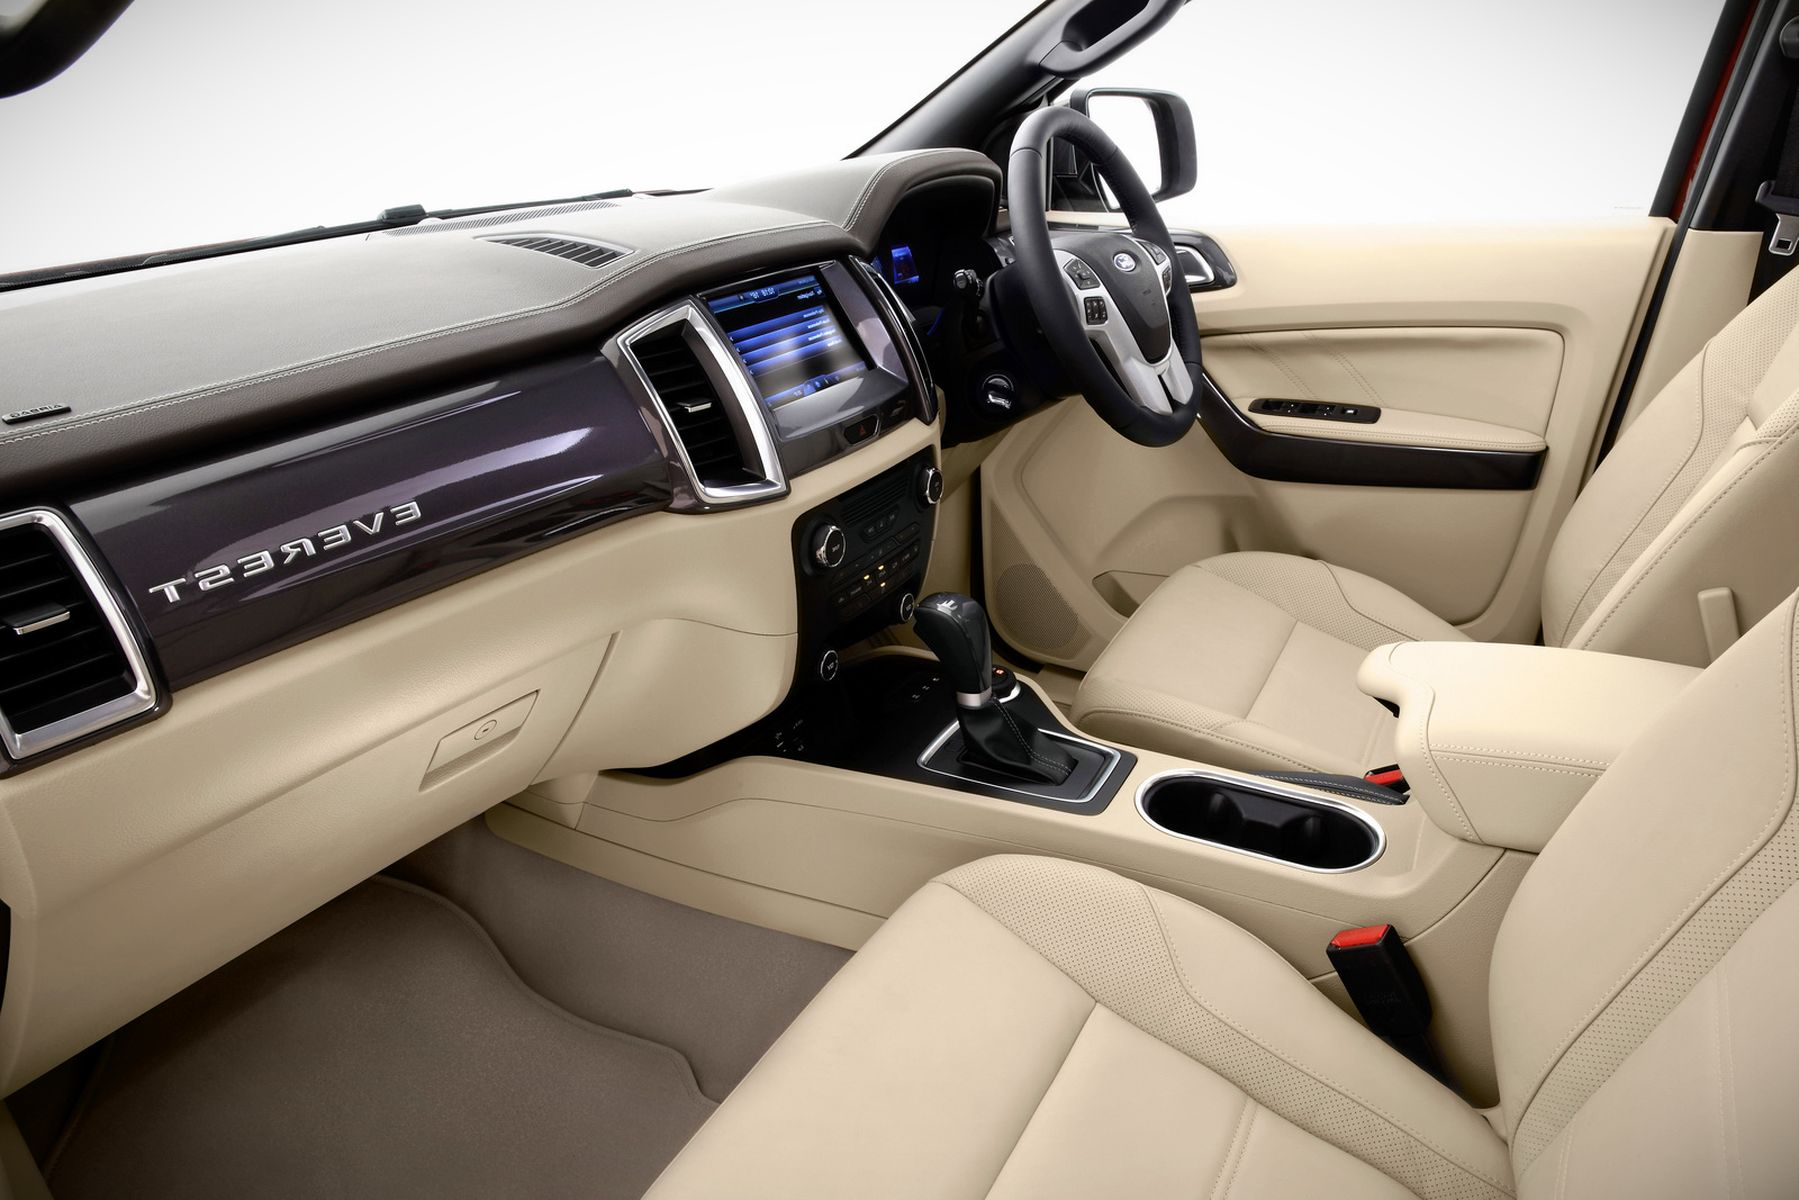 2019 Ford Everest Interior Leather Seating Color